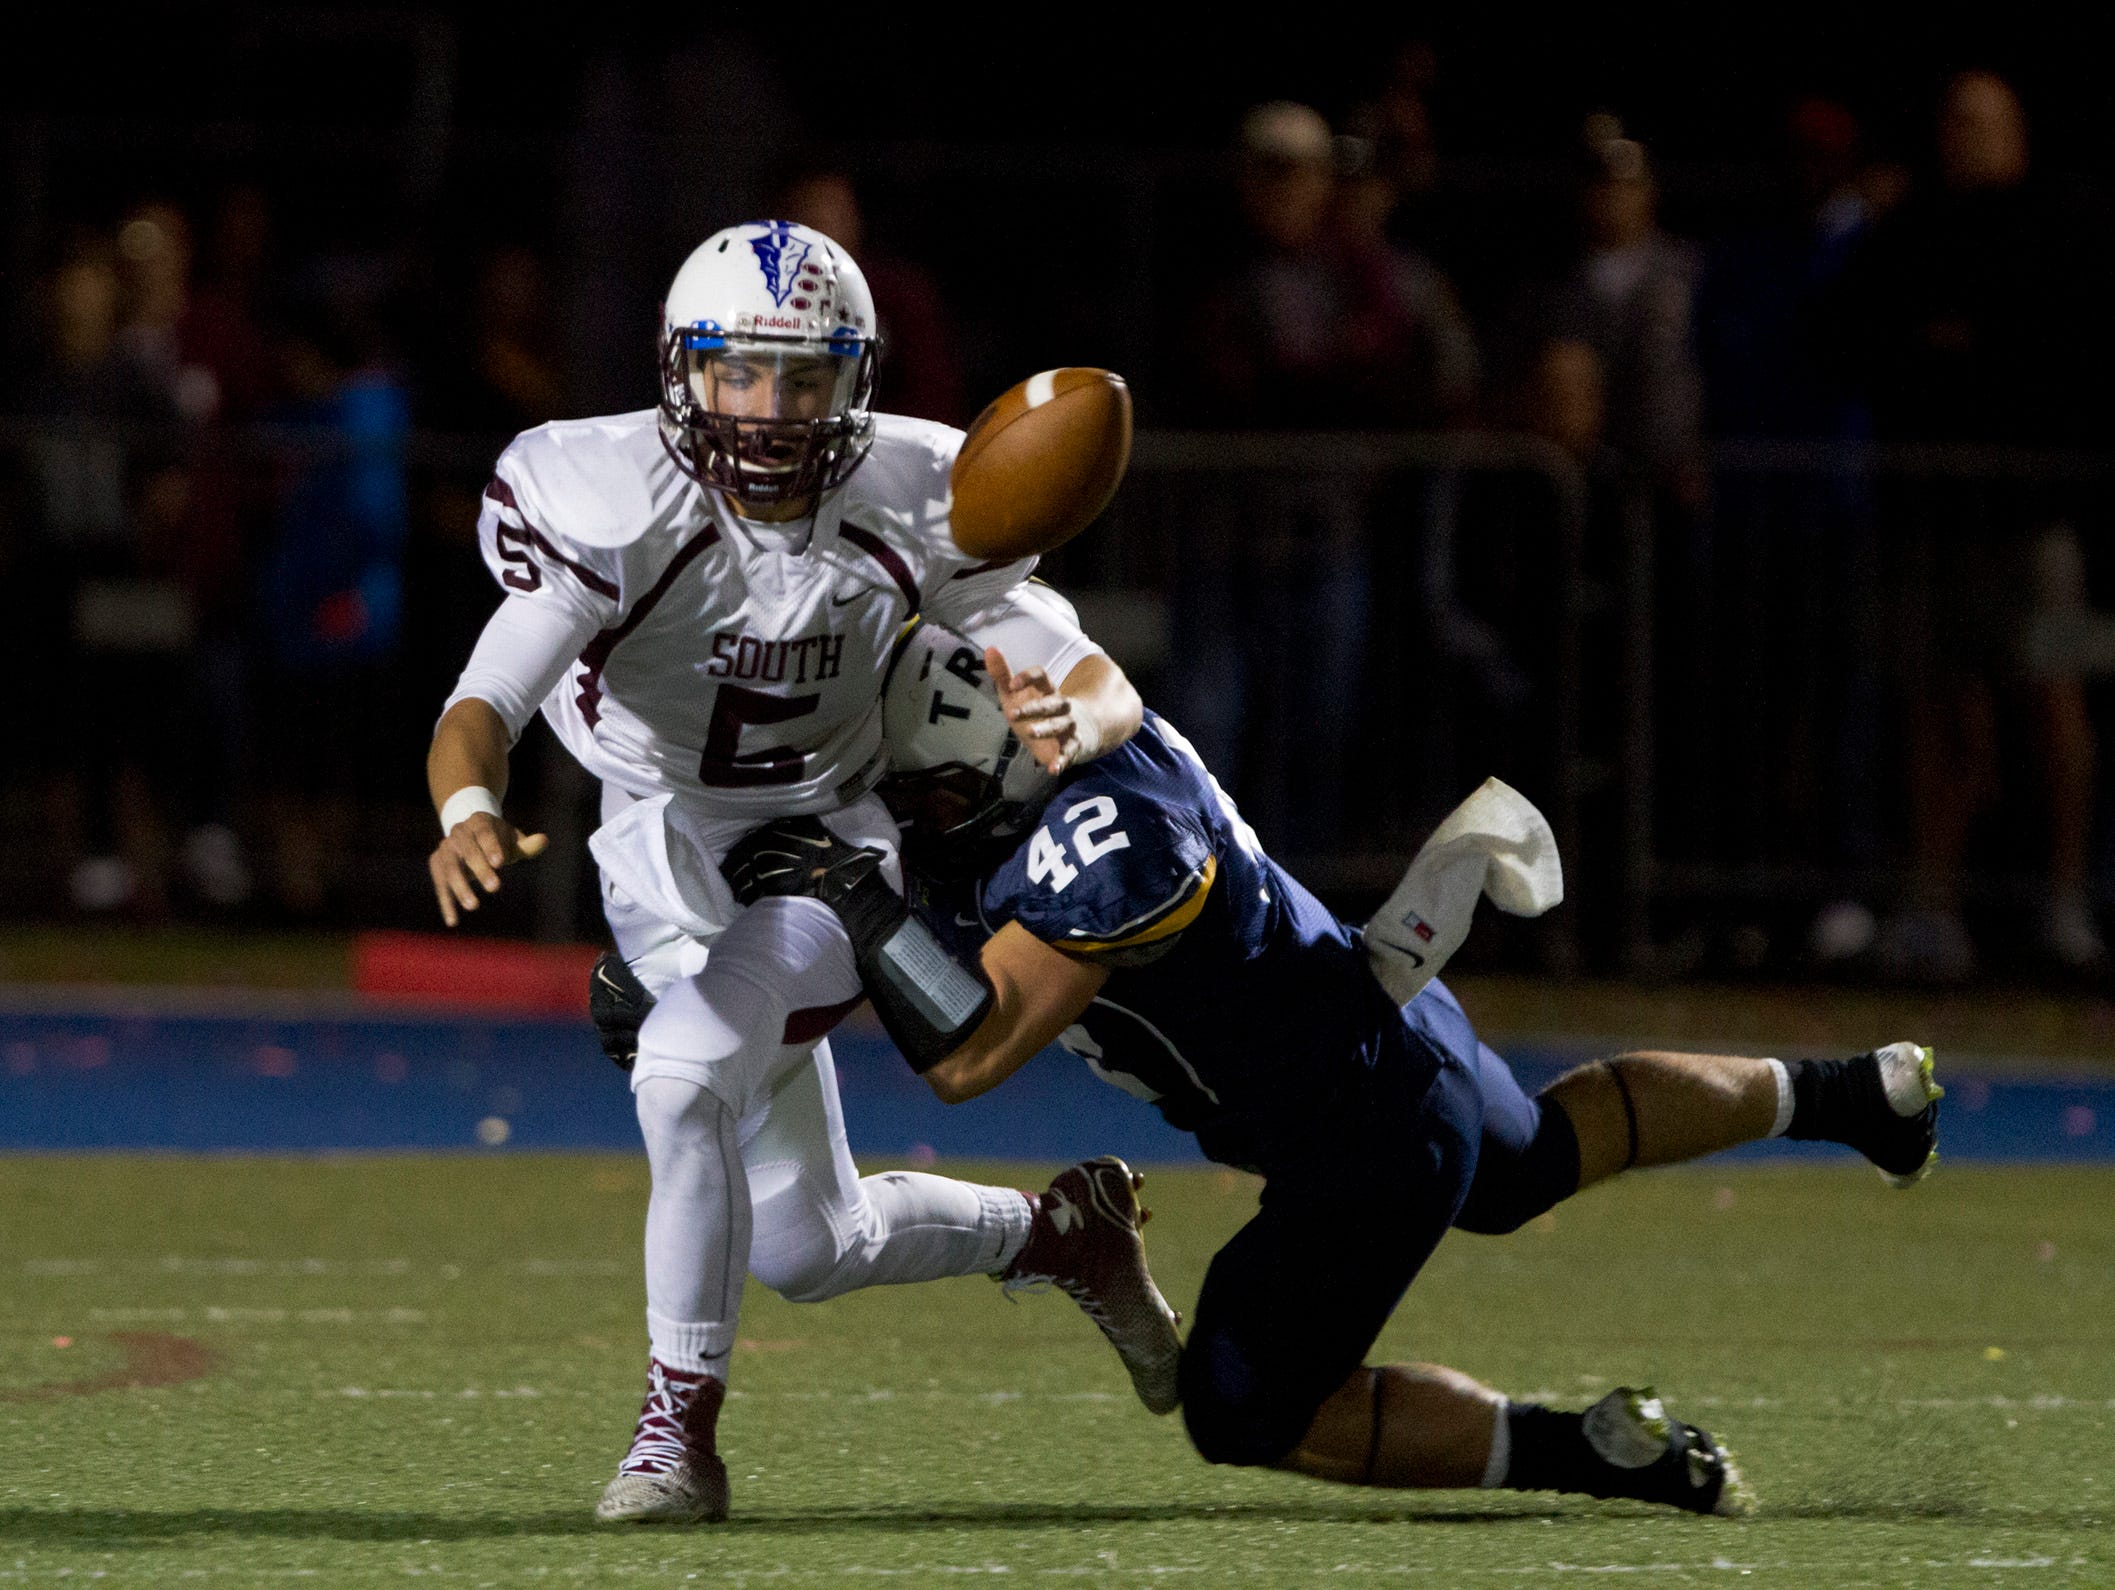 Toms River South Quarterback TJ Scuderi loses the ball as he tackled by North's Tommy Donovan and ball was picked up by his North's Pete LaQuaflia and taken join for North's second touchdown. Toms River South vs Toms River North Football in Toms River NJ on September 25, 2015.